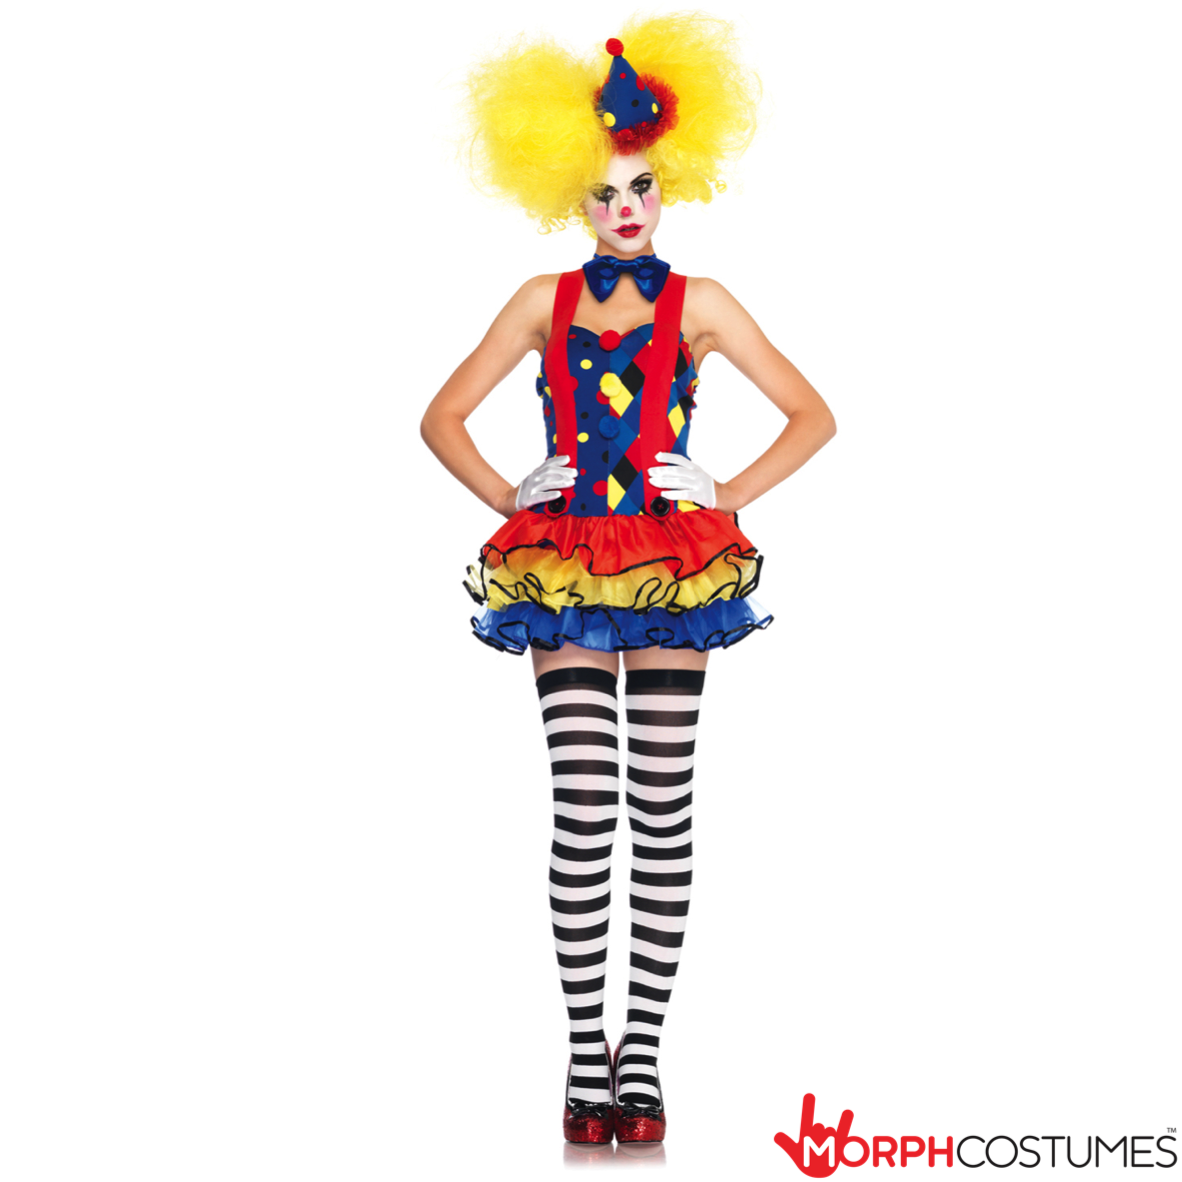 Circus fancy dress costume inspiration be the sensation of the circus fancy dress costume inspiration be the sensation of the circus with the leg avenue giggles the sexy clown costume get yourself one for any circus solutioingenieria Image collections